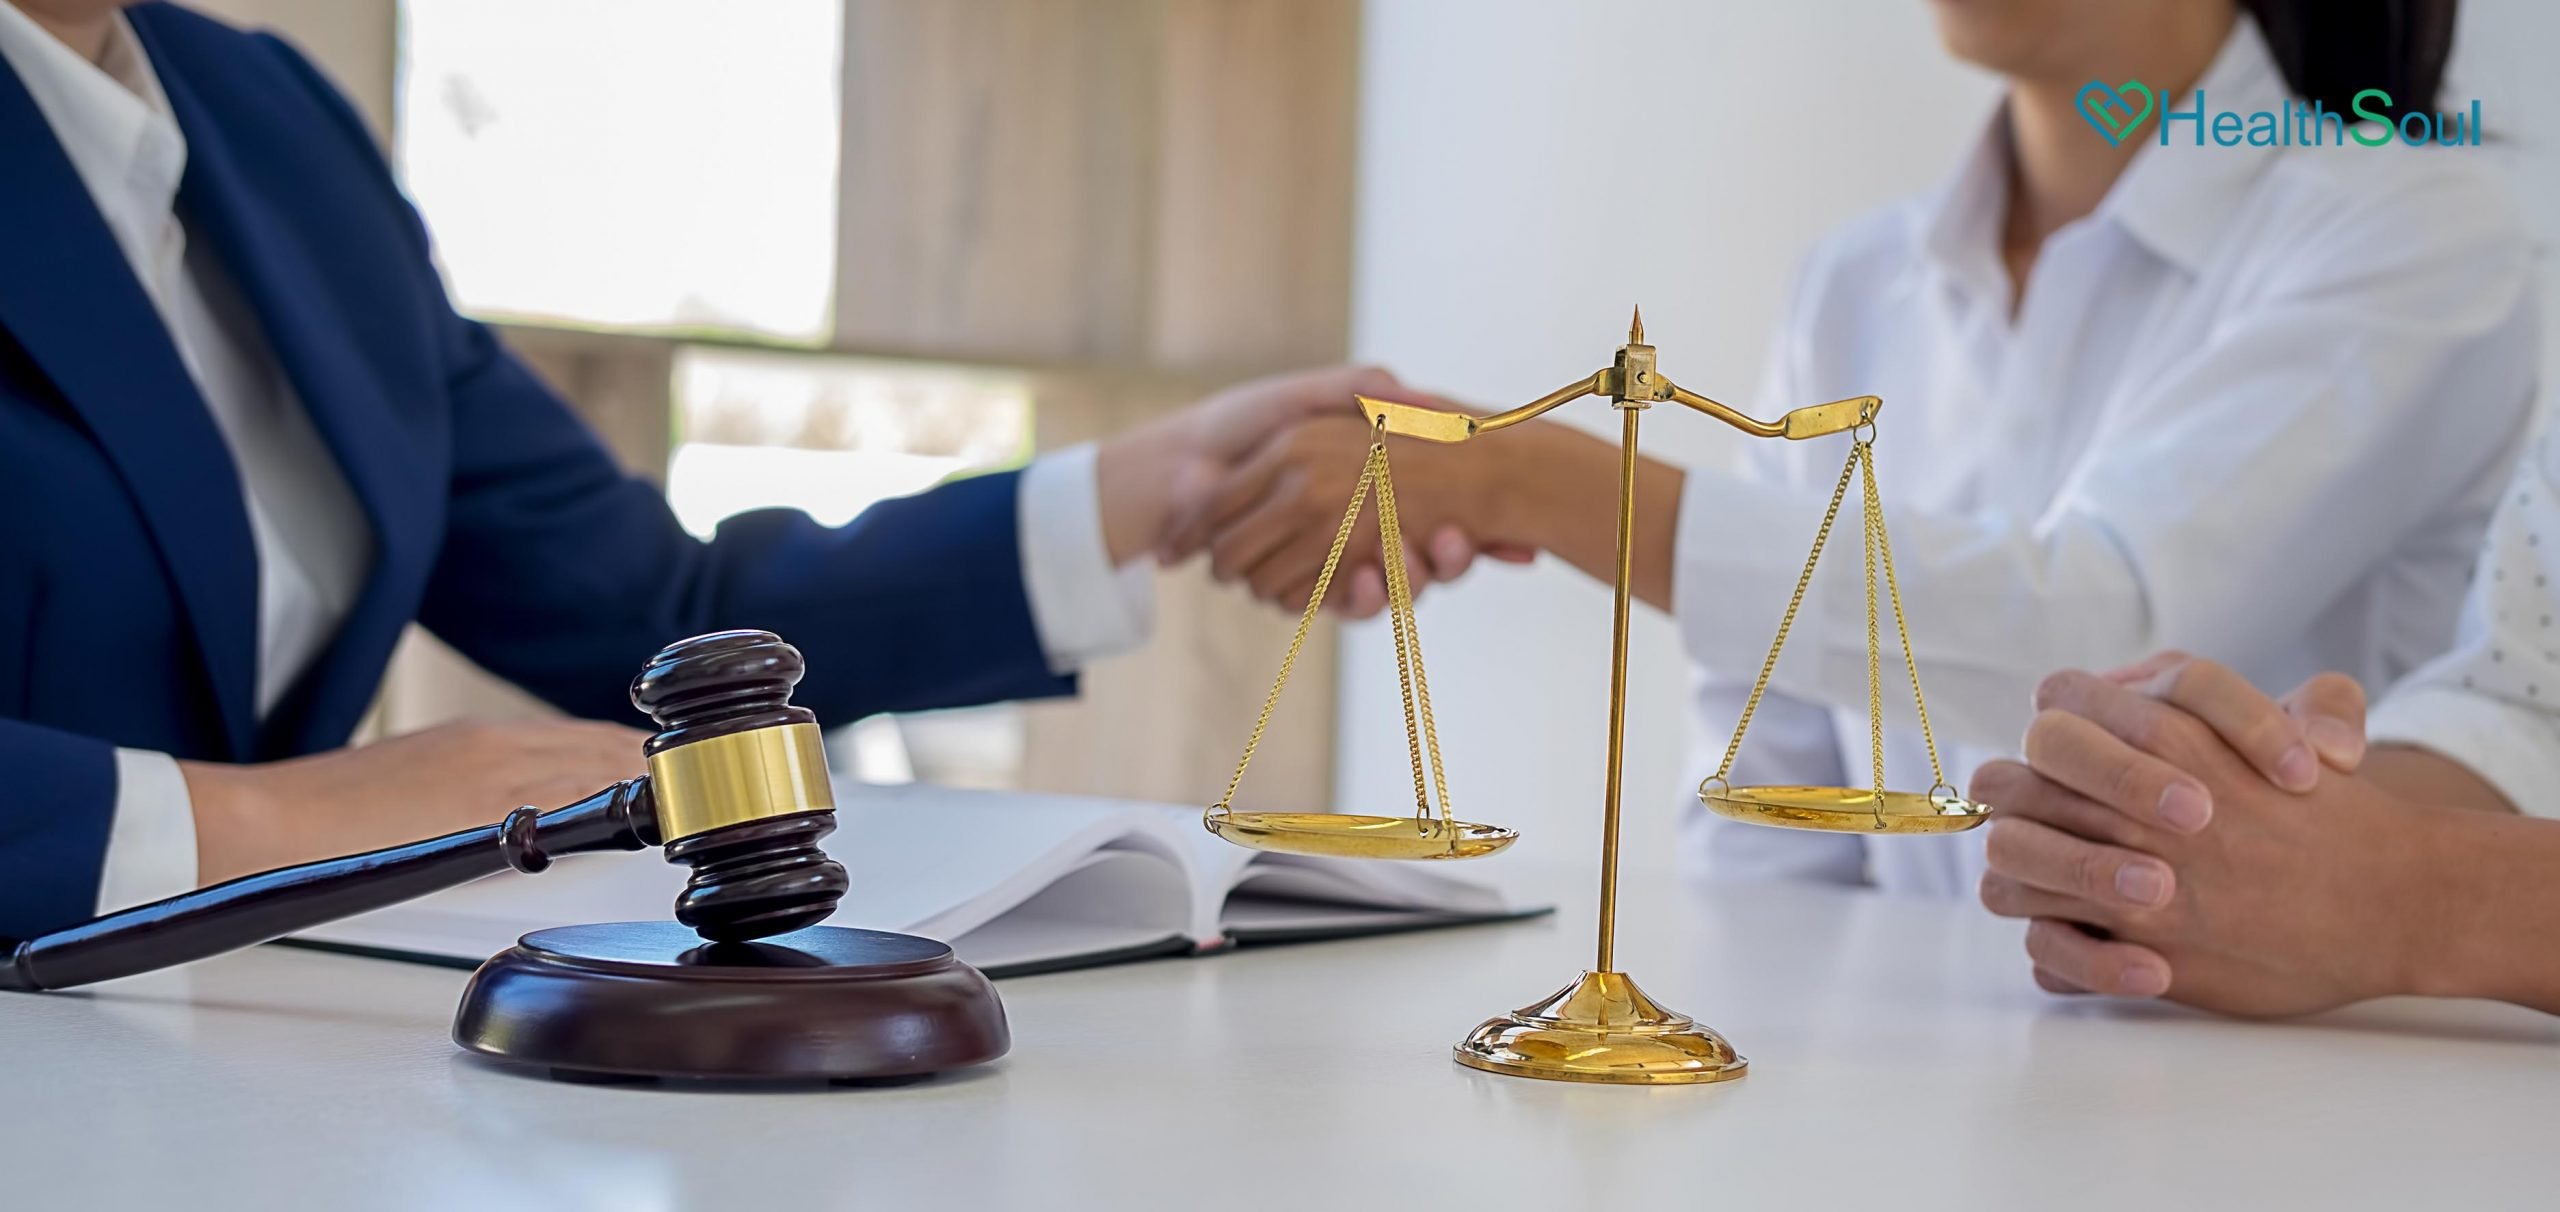 Advantages Of Hiring A Good Personal Injury Lawyer | HealthSoul